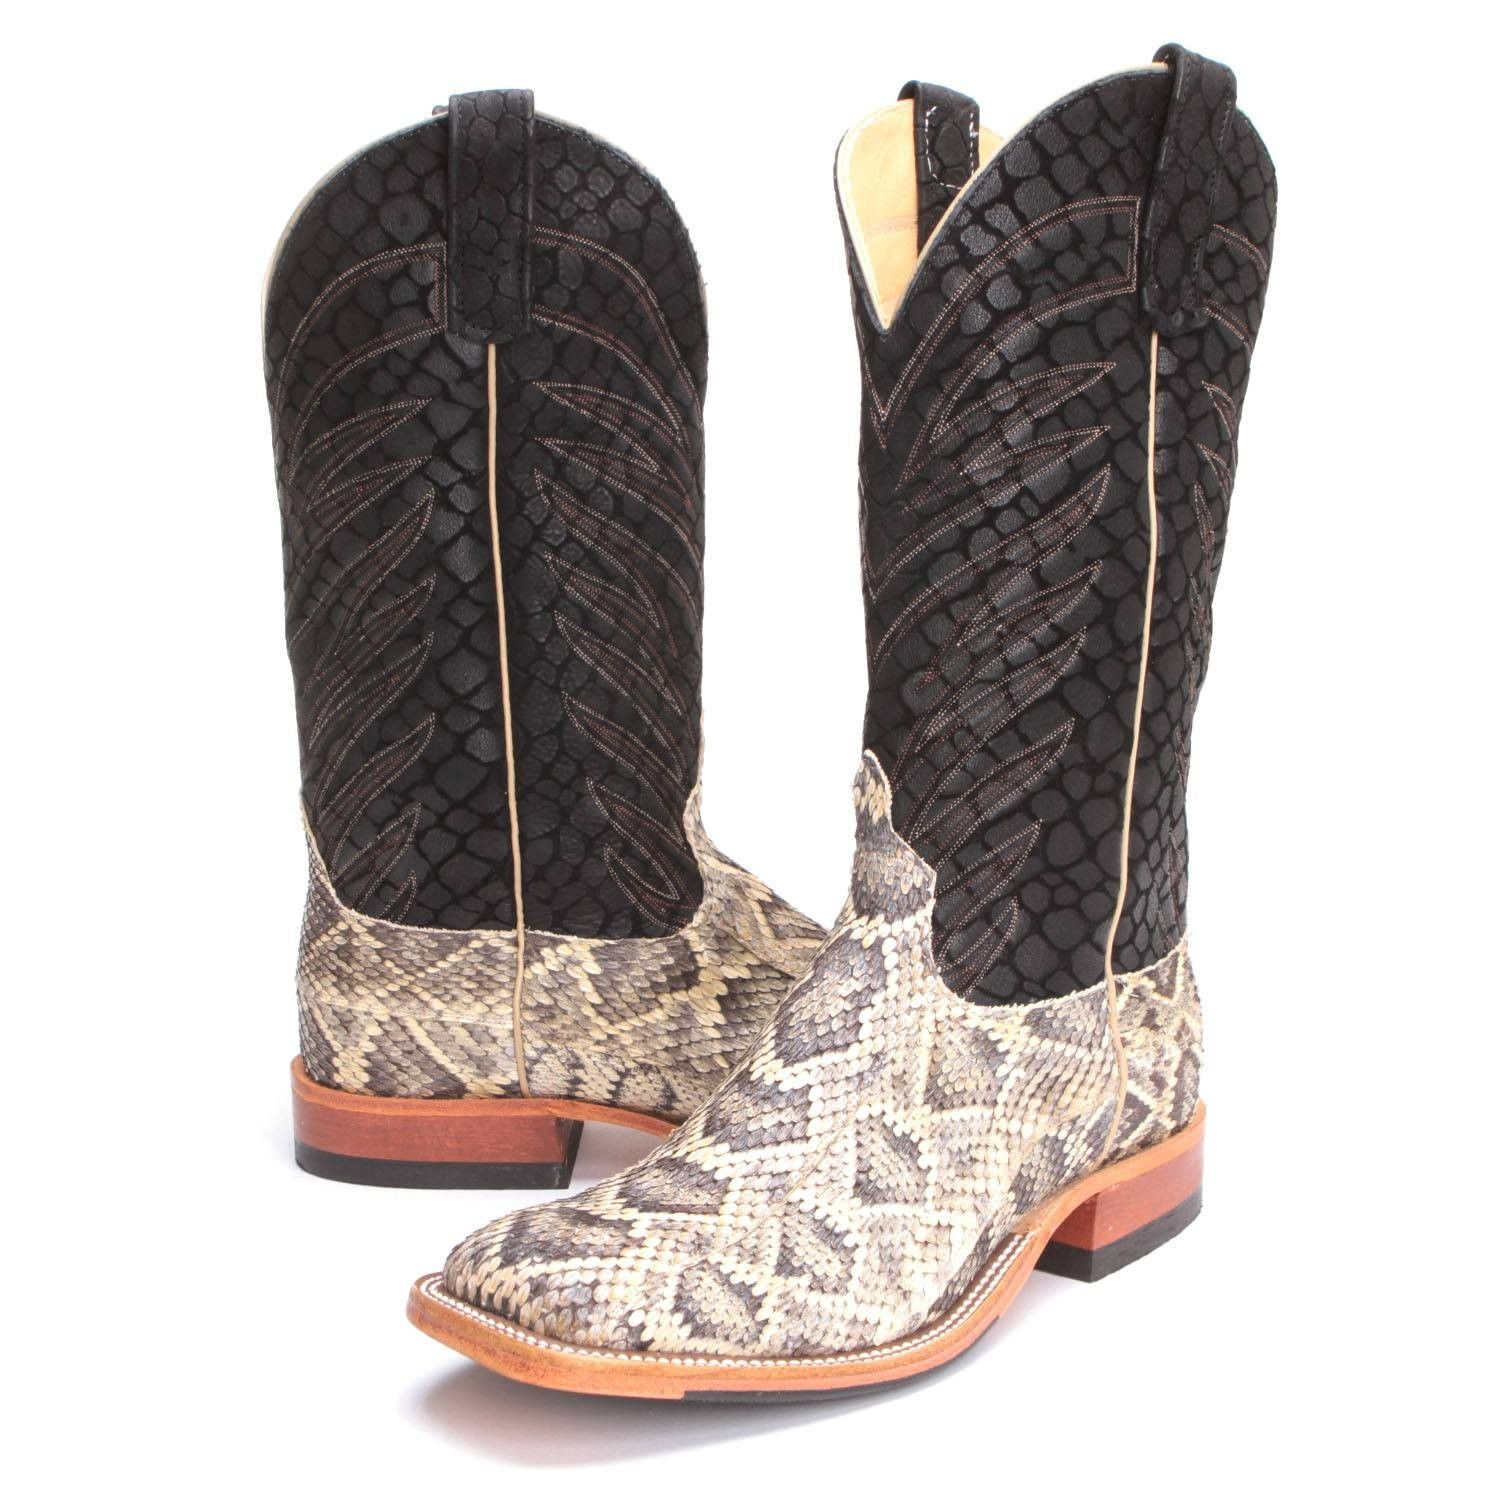 b4394de1764d6 PFIs BootDaddy Collection with Anderson Bean Mens Vertigo Rattlesnake  Cowboy Boots